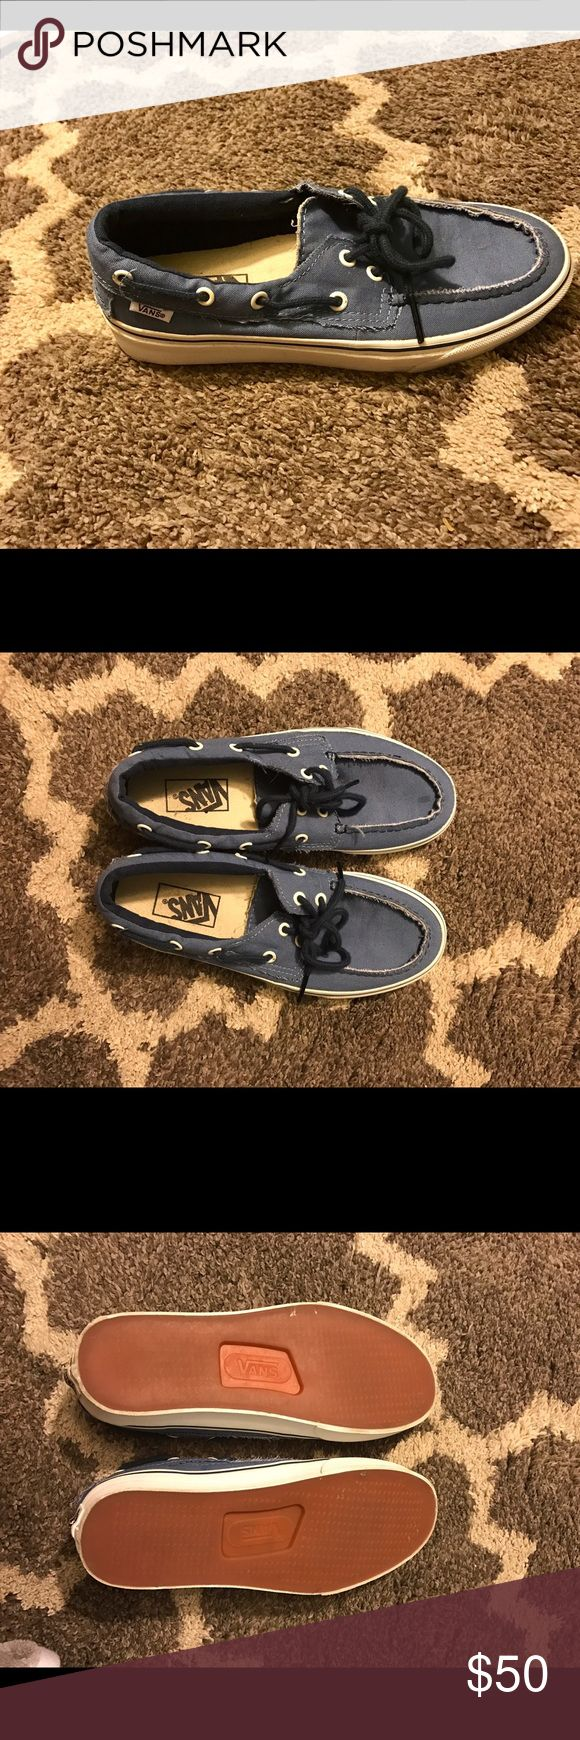 Vans boat shoe Vans navy blue boat shoe. Size: Men's US 7.5 Women's US 9. Description: Boat shoe. Great condition only worn once. Comfortable fit. Soles look new as does material. Vans Shoes Sneakers